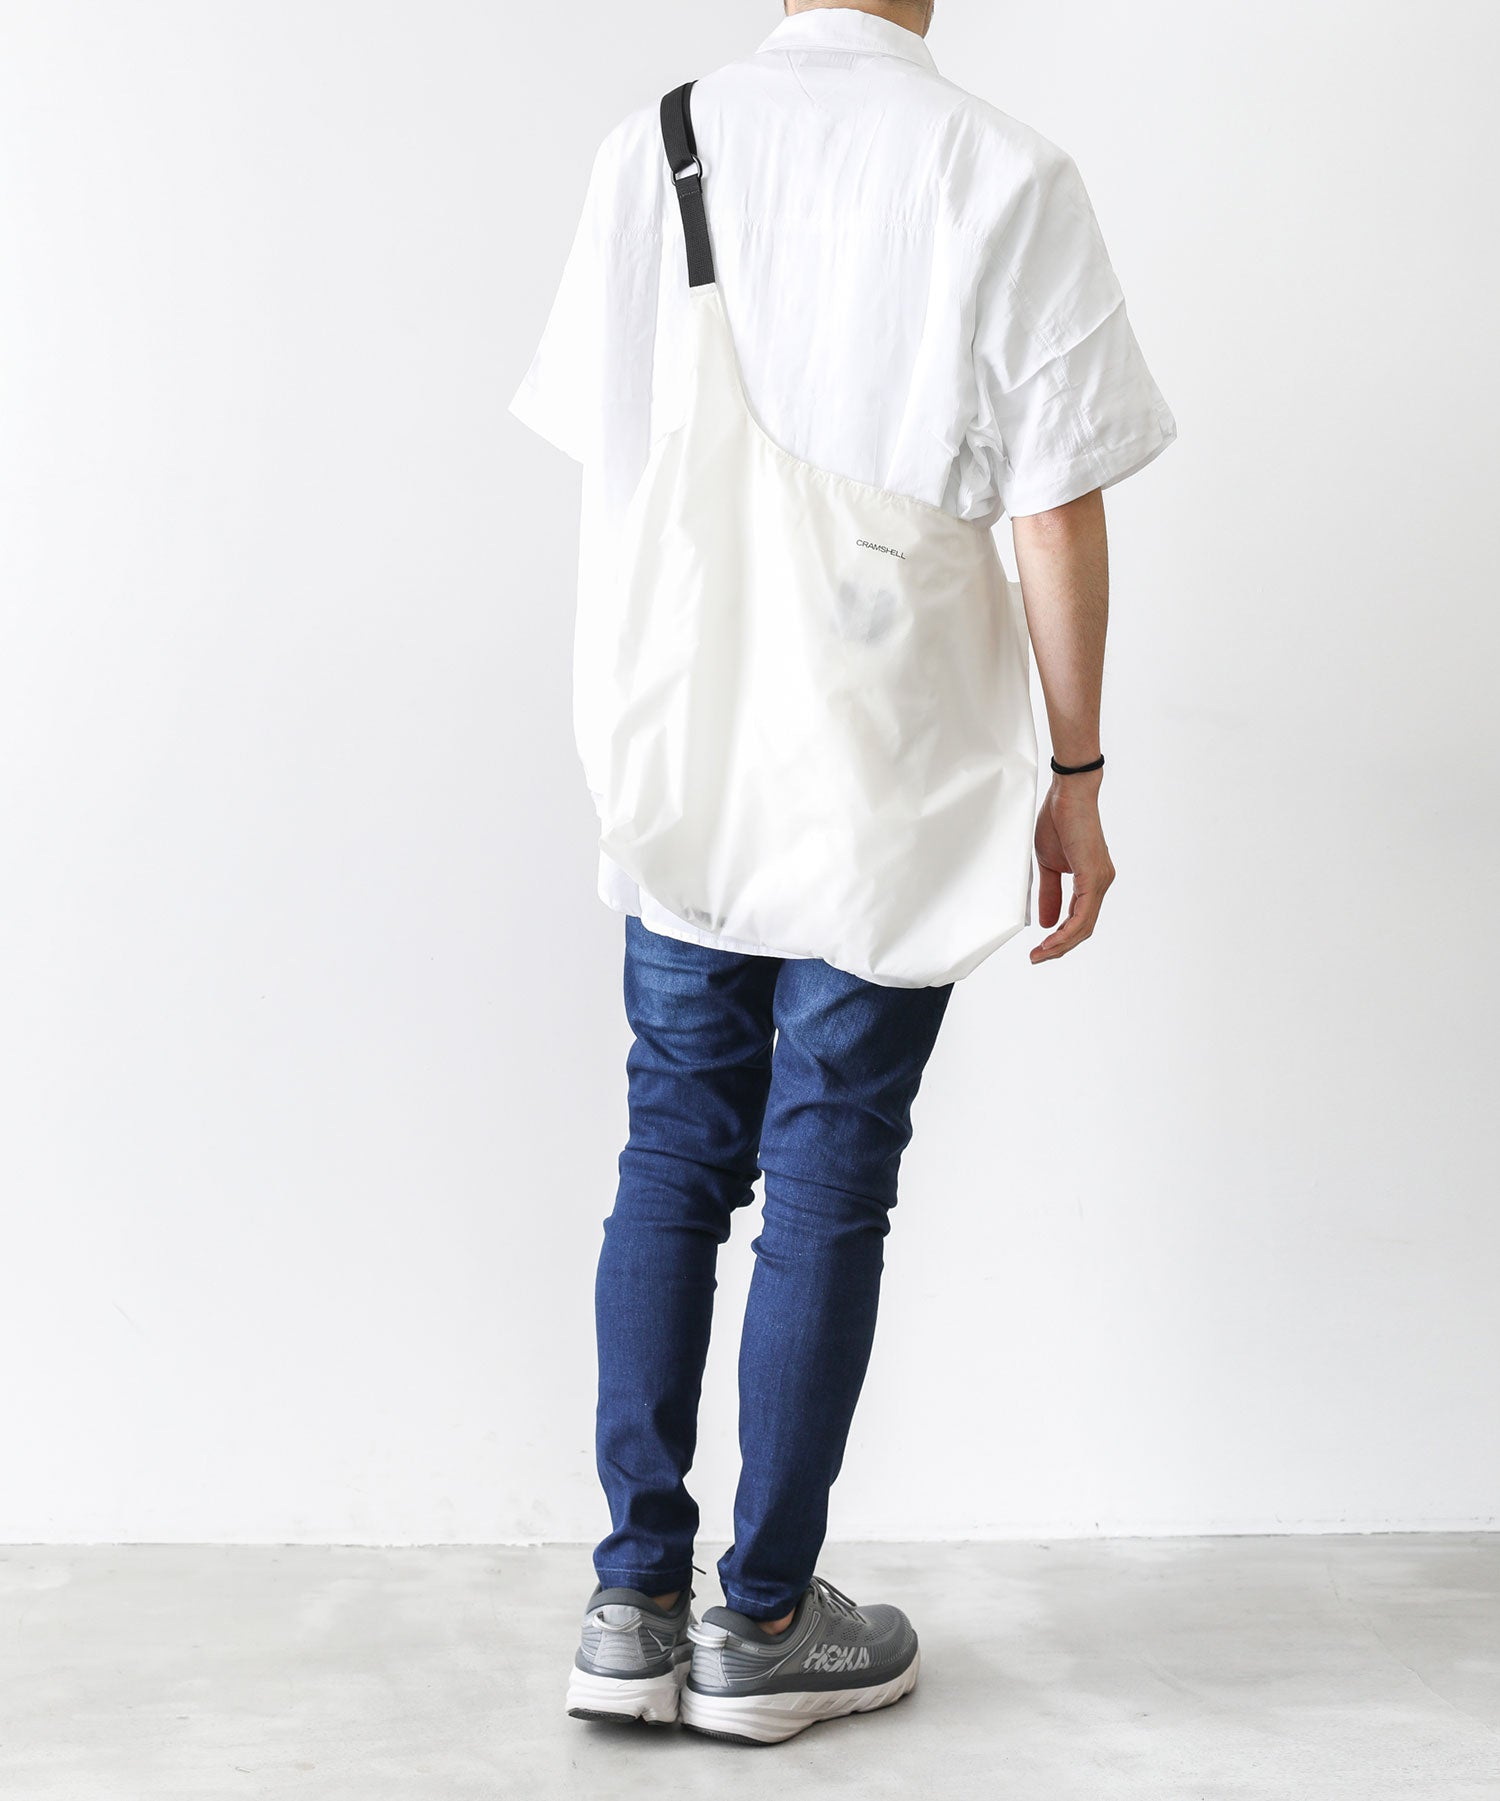 【atman】 stretch SKINNY DENIM